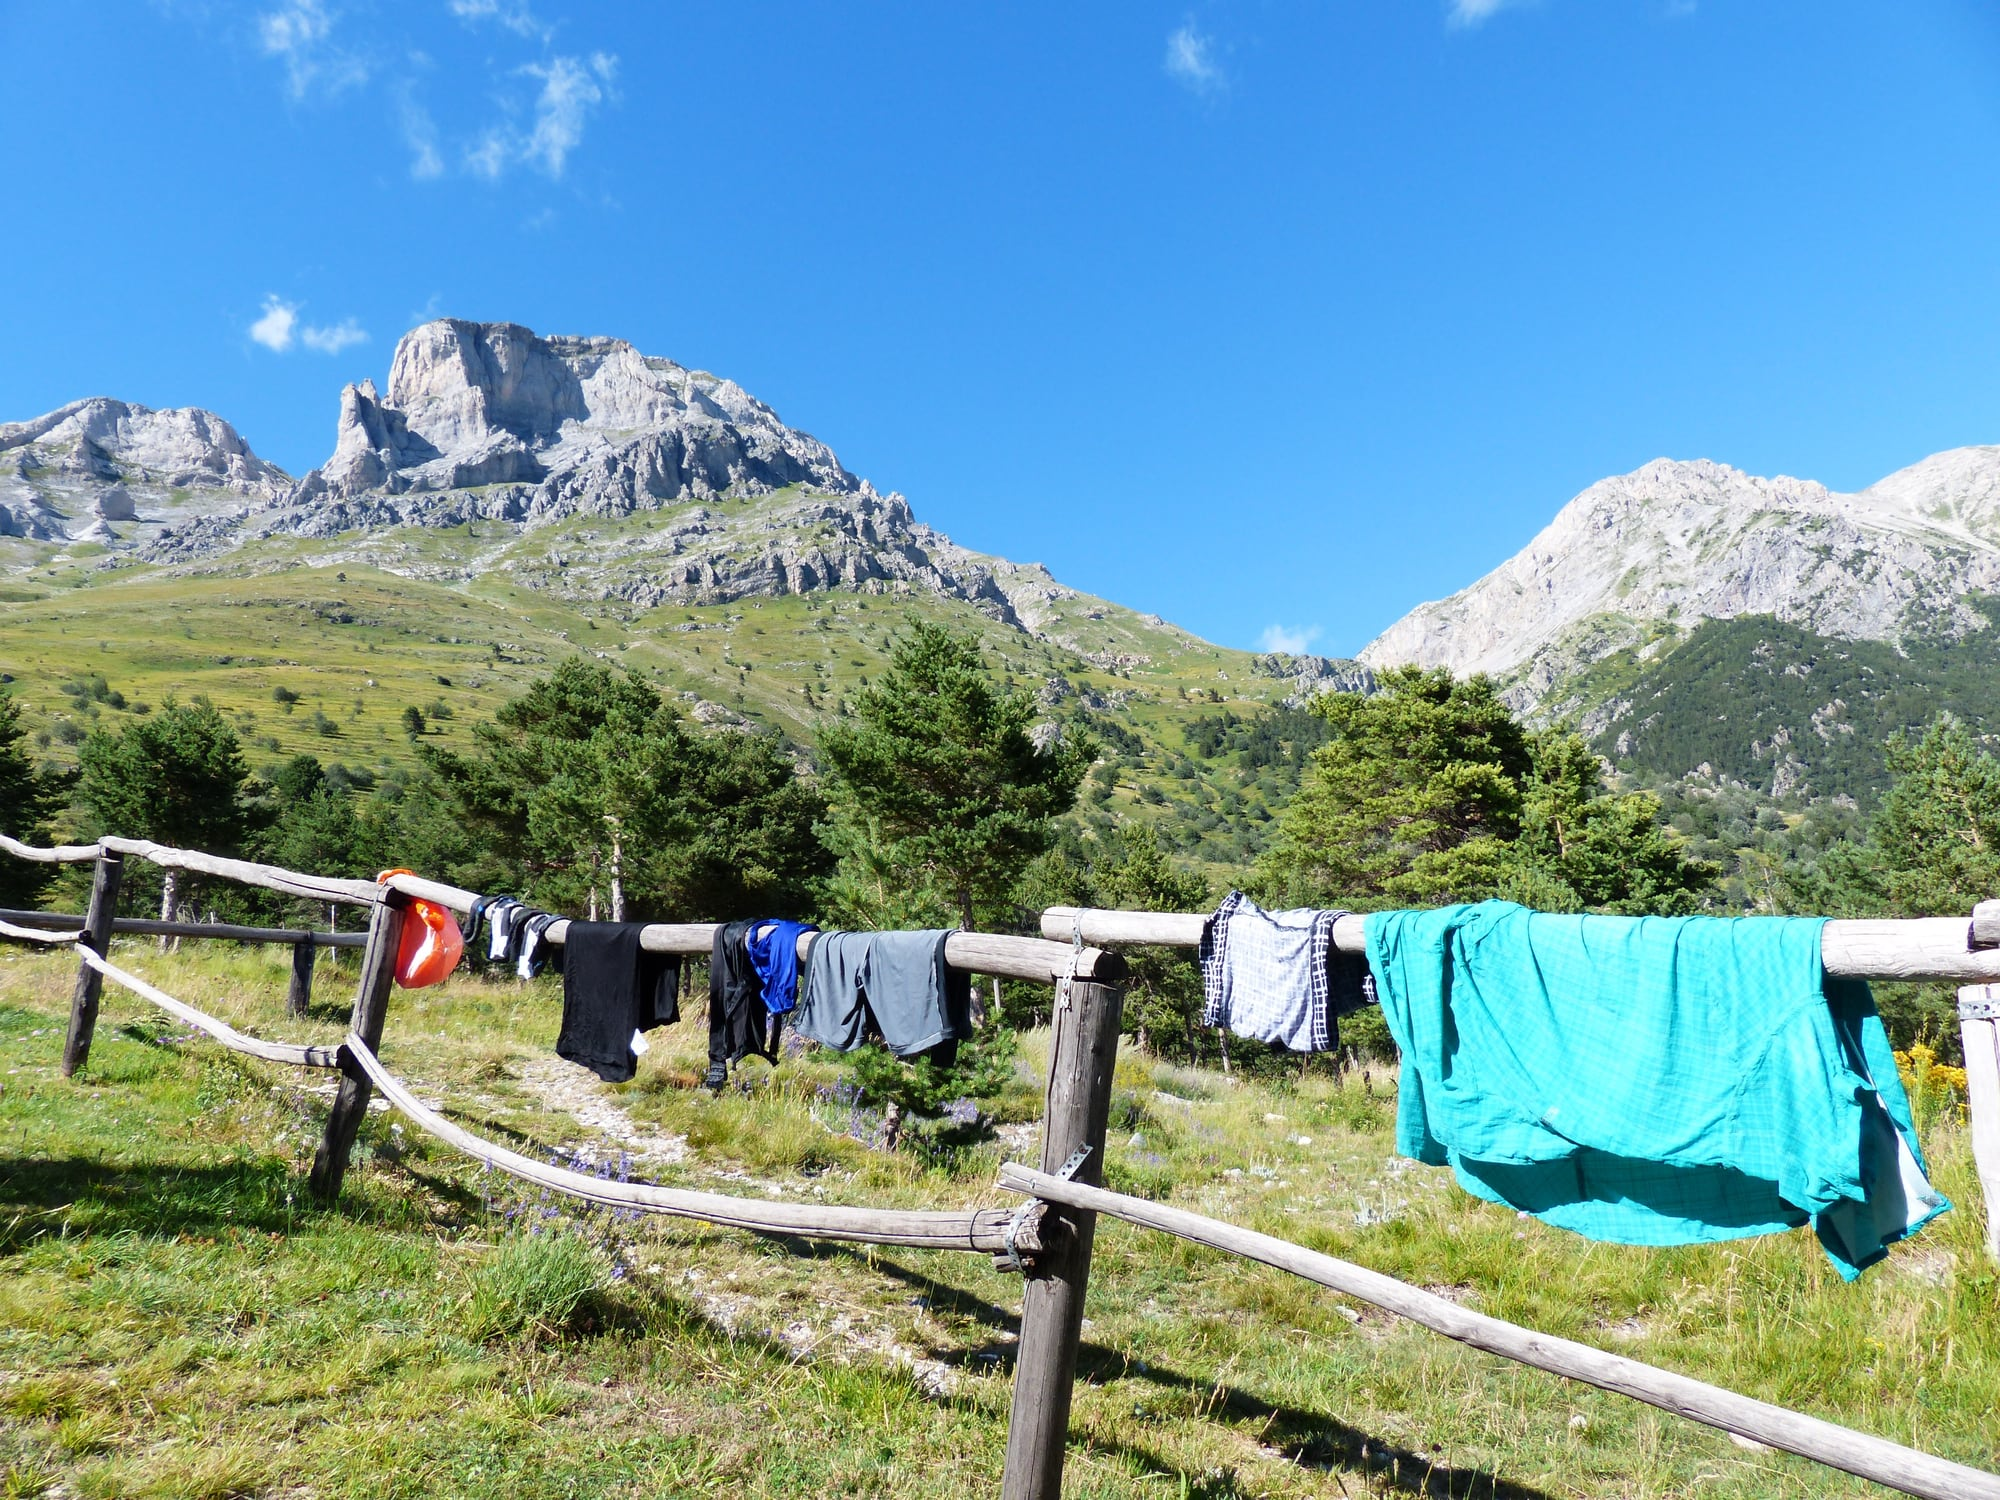 Clothes hang out to dry against a backdrop of mountains